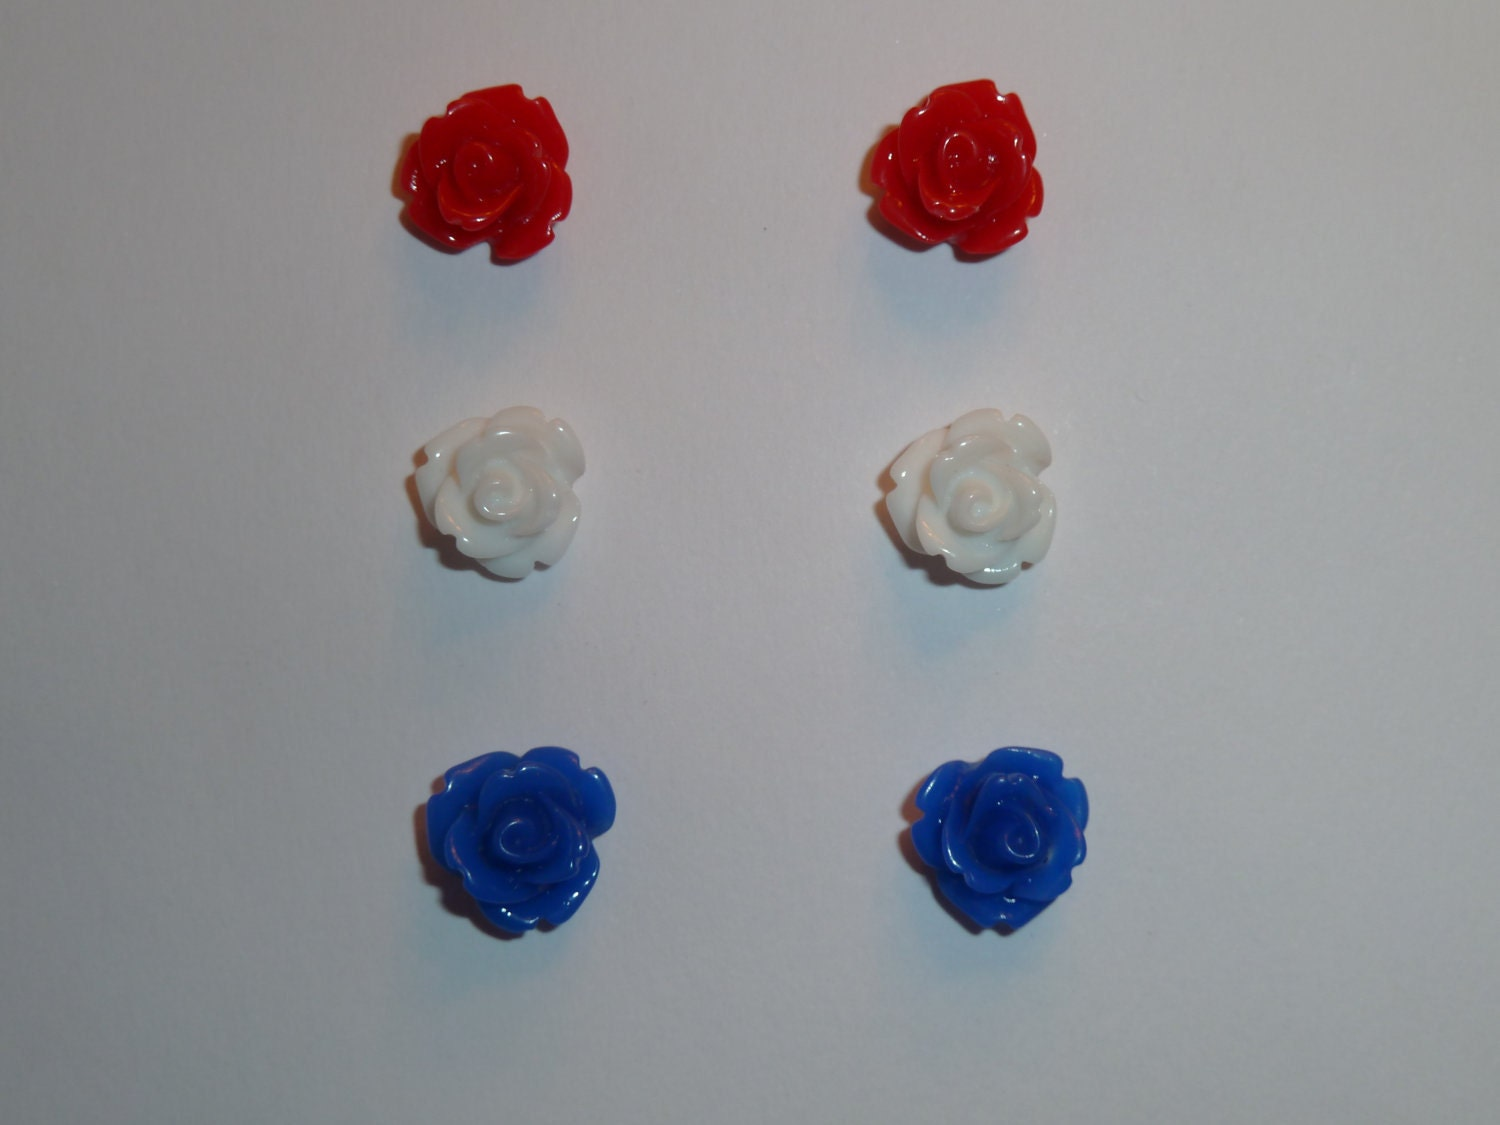 Red, White and Blue Rose Earring Trio